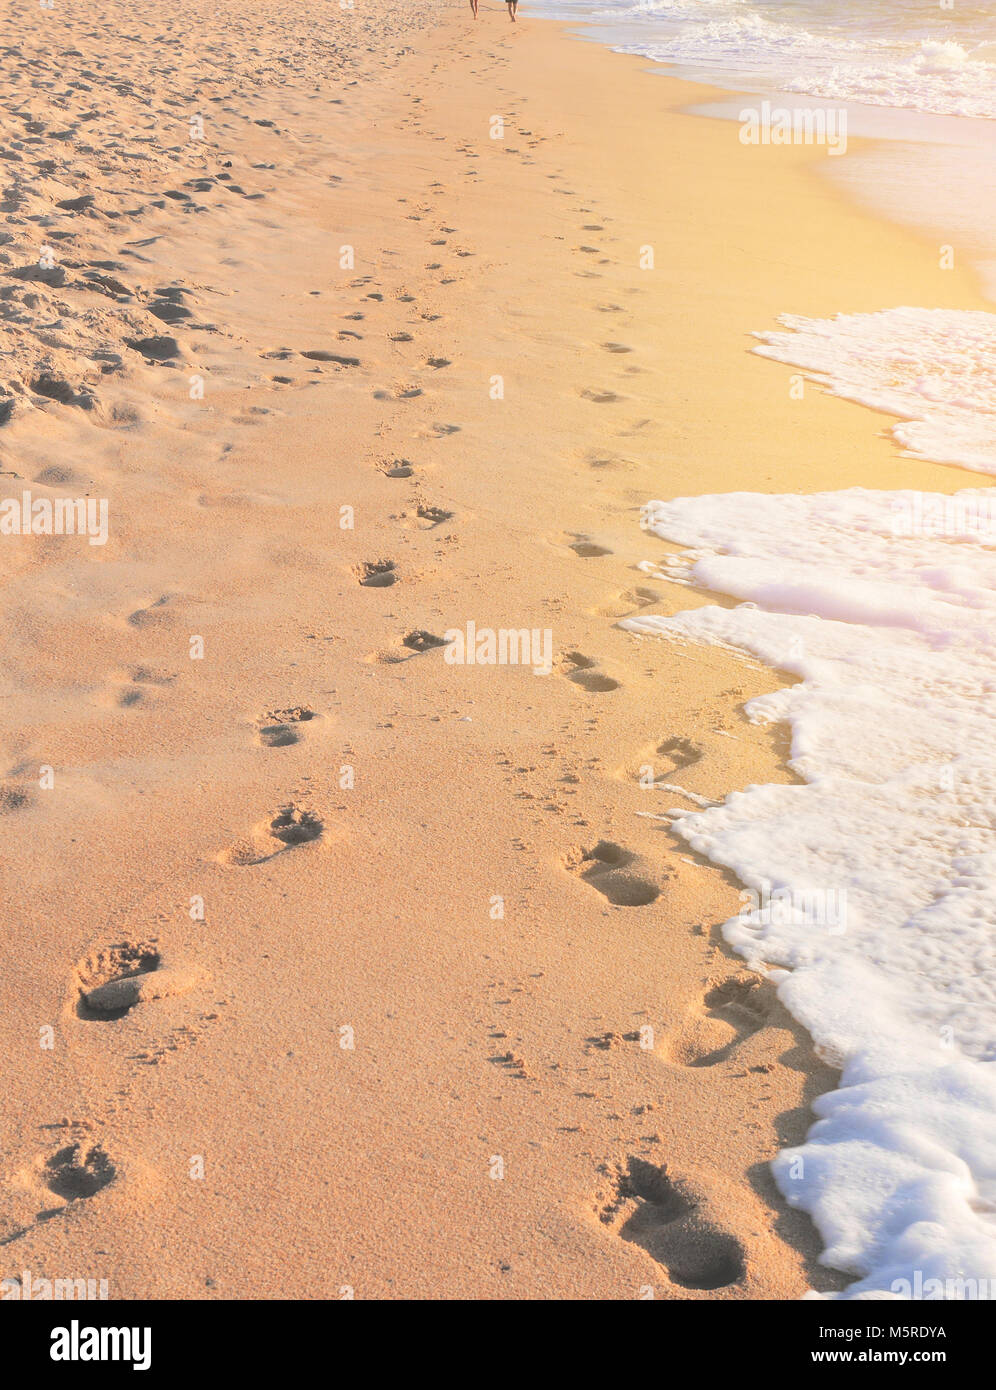 Footprints of a couple on a beach reflecting a journey of married life - Stock Image